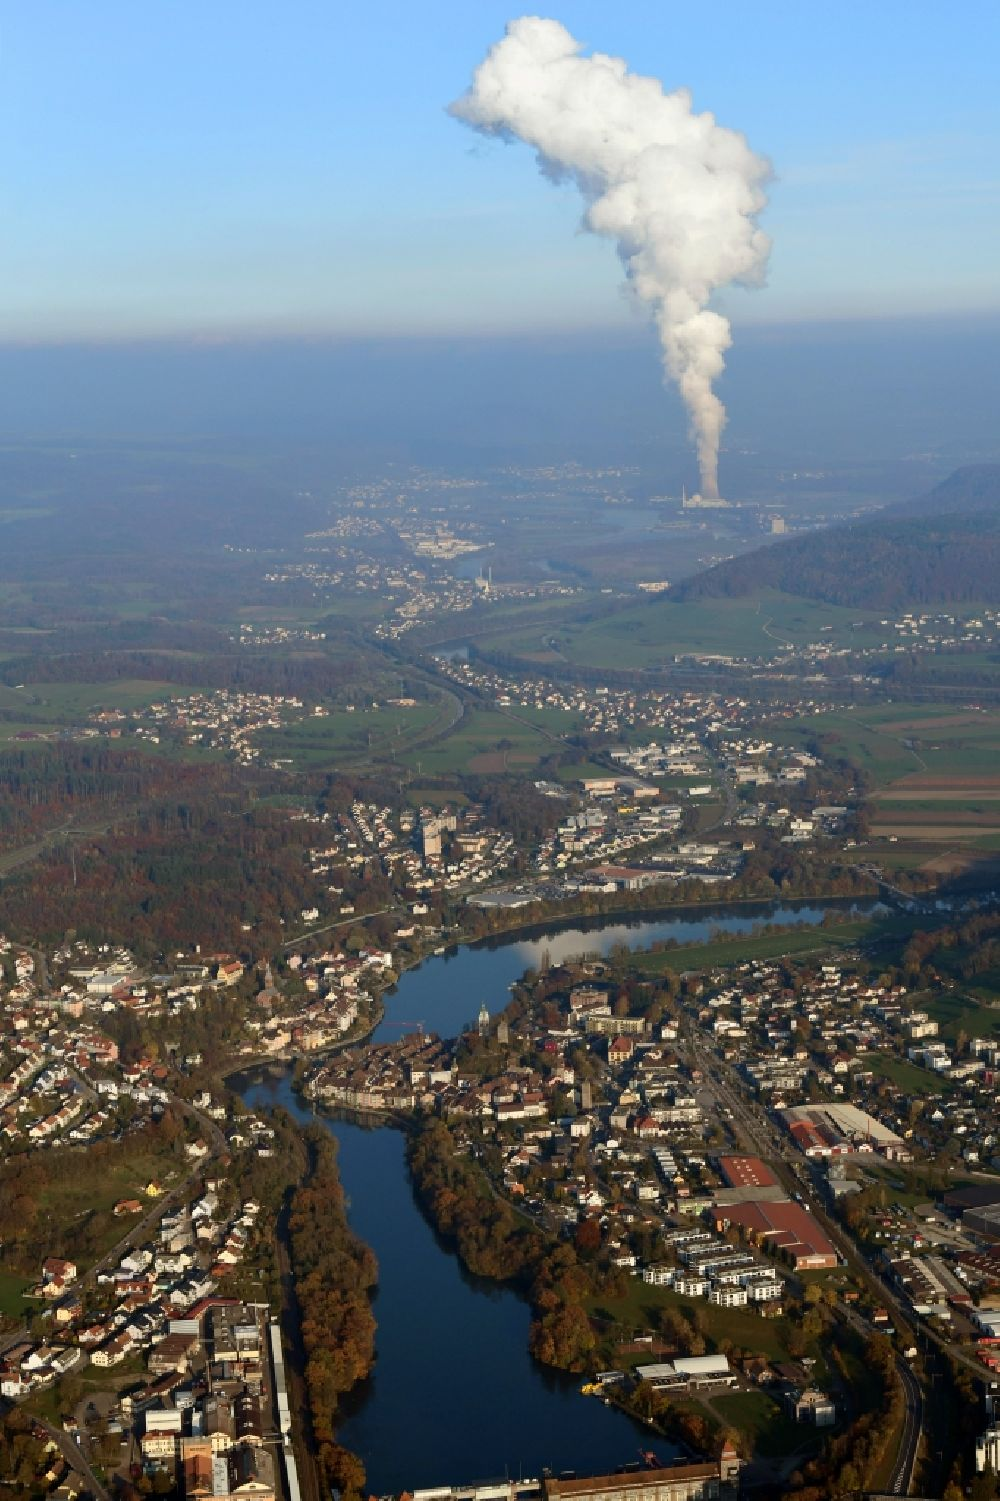 Aerial image Laufenburg - Landscape at the Rhine - river in Laufenburg in the state Baden-Wurttemberg, Germany. Steam column of the NPP nuclear power plant KKL Leibstadt in Switzerland.